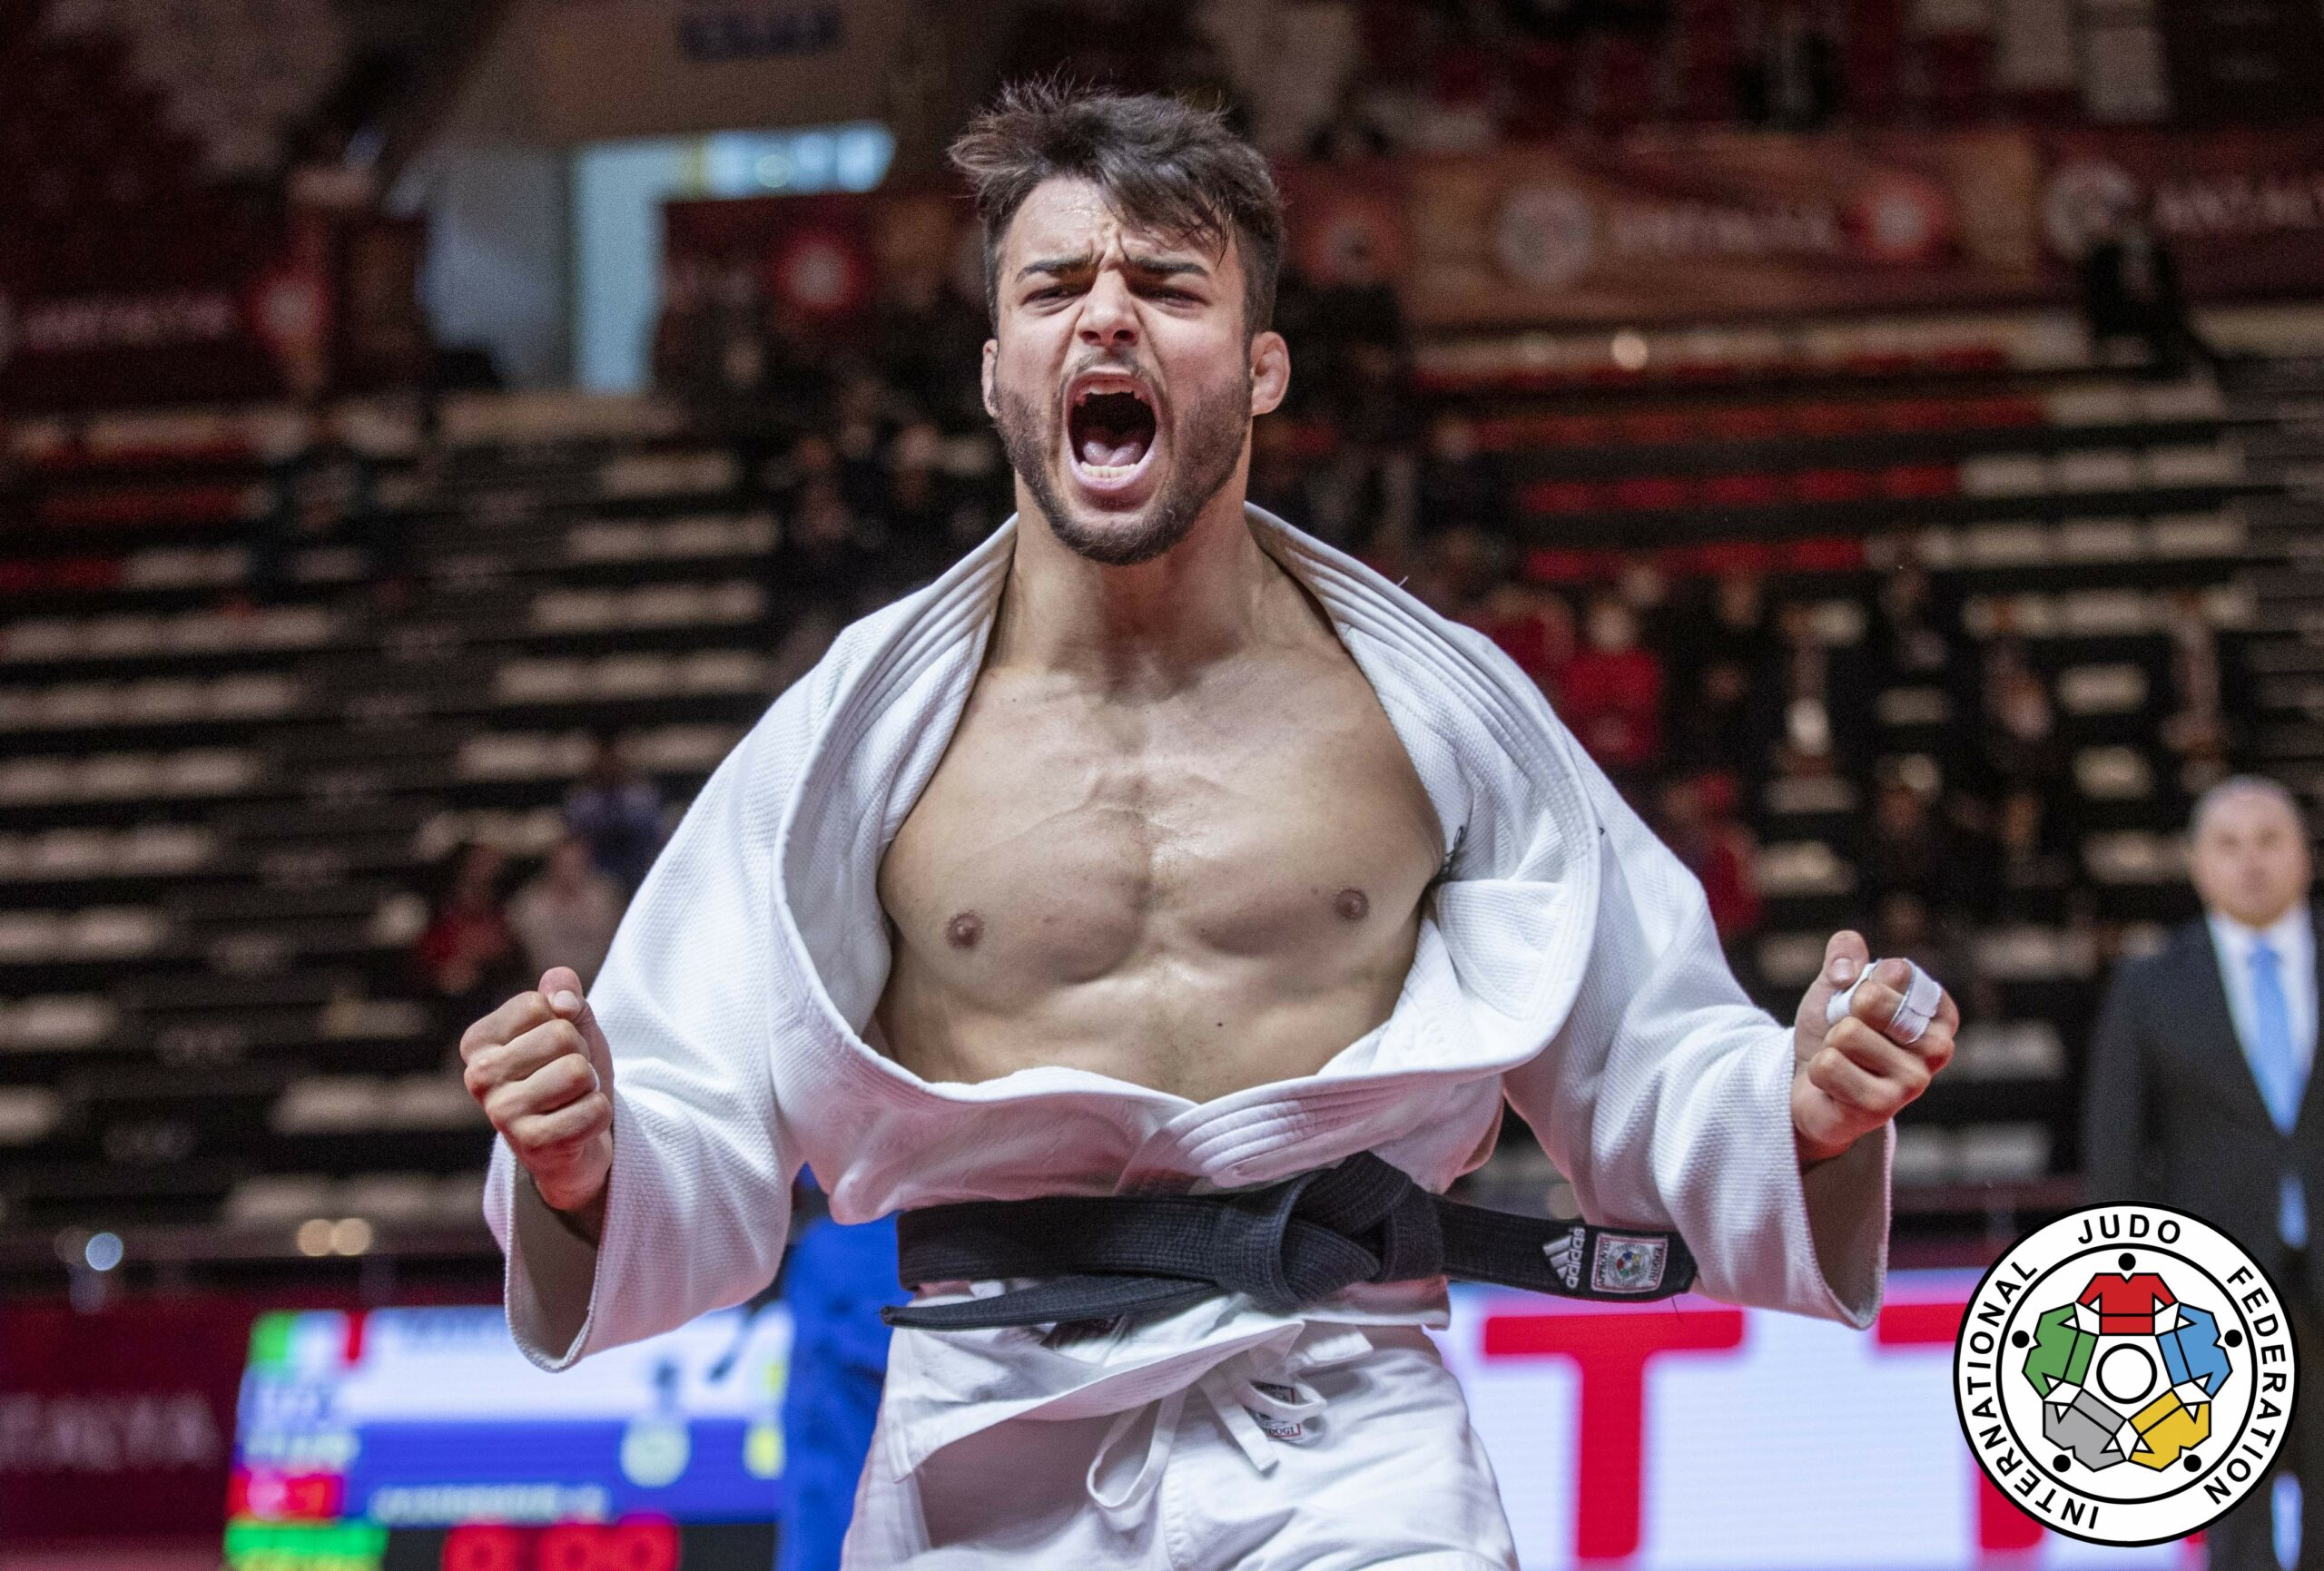 BASILE ENDS SIX YEAR QUEST WITH GRAND SLAM GOLD IN ANTALYA